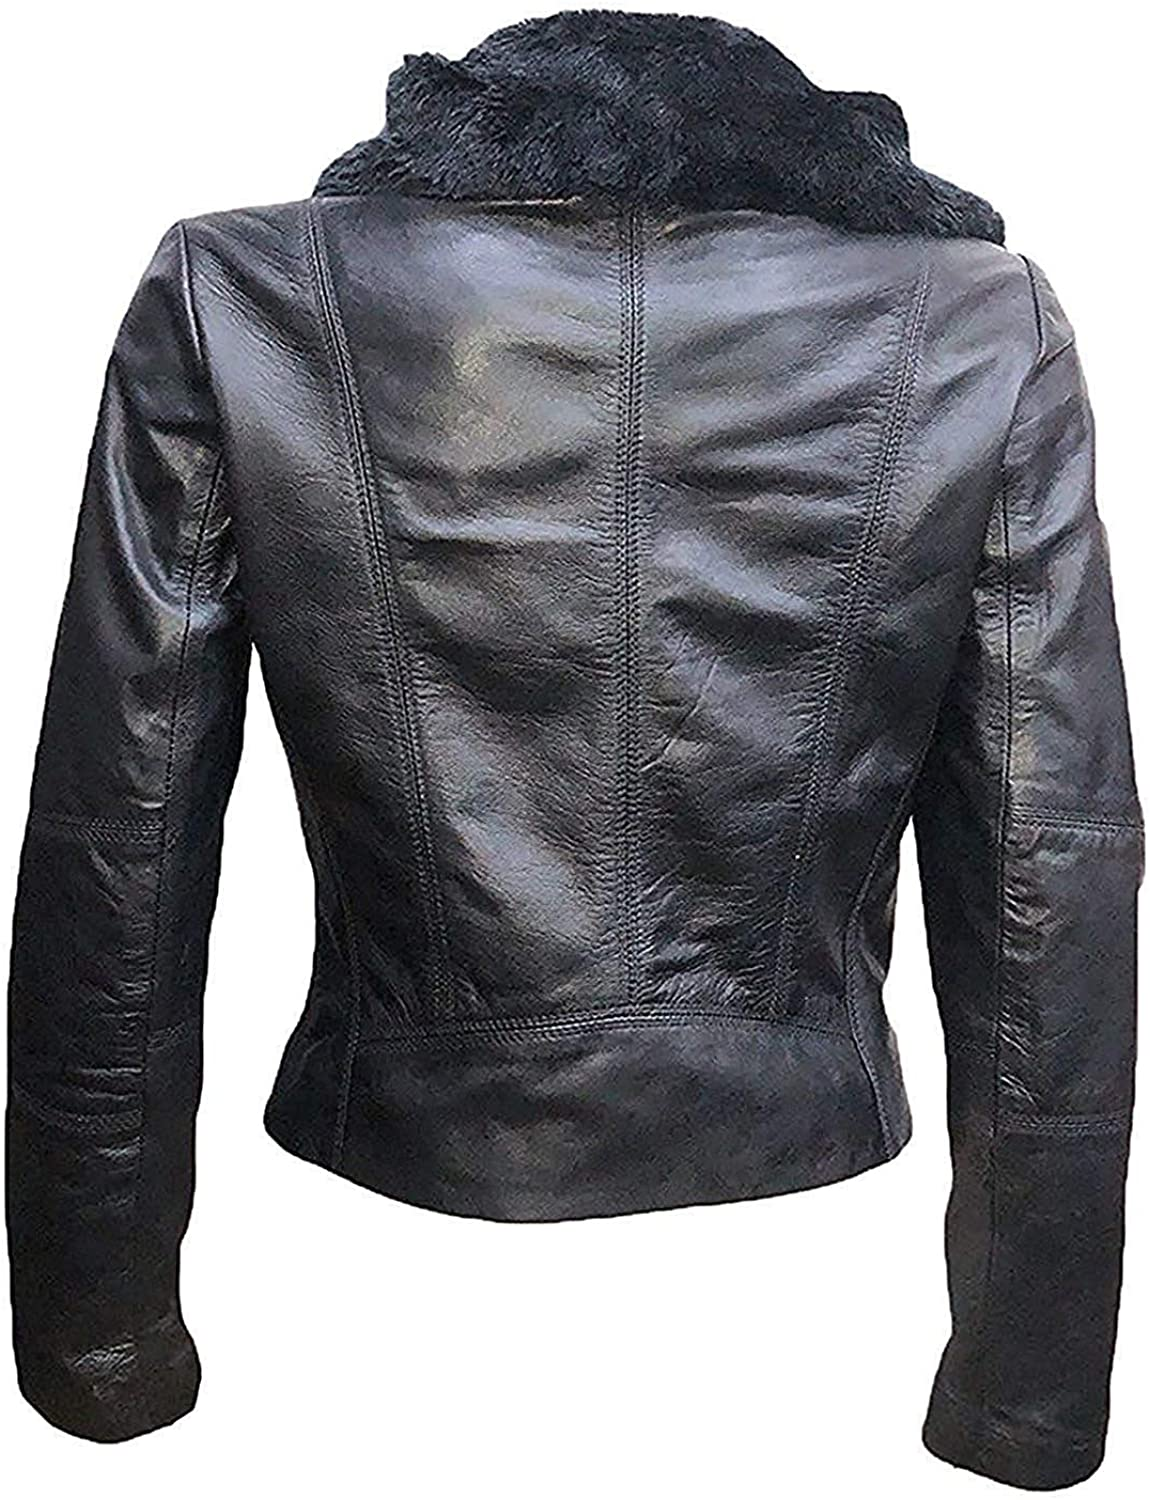 Women Black Leather Jacket Gal Gadot Black Ladies Leather Jacket for Womens